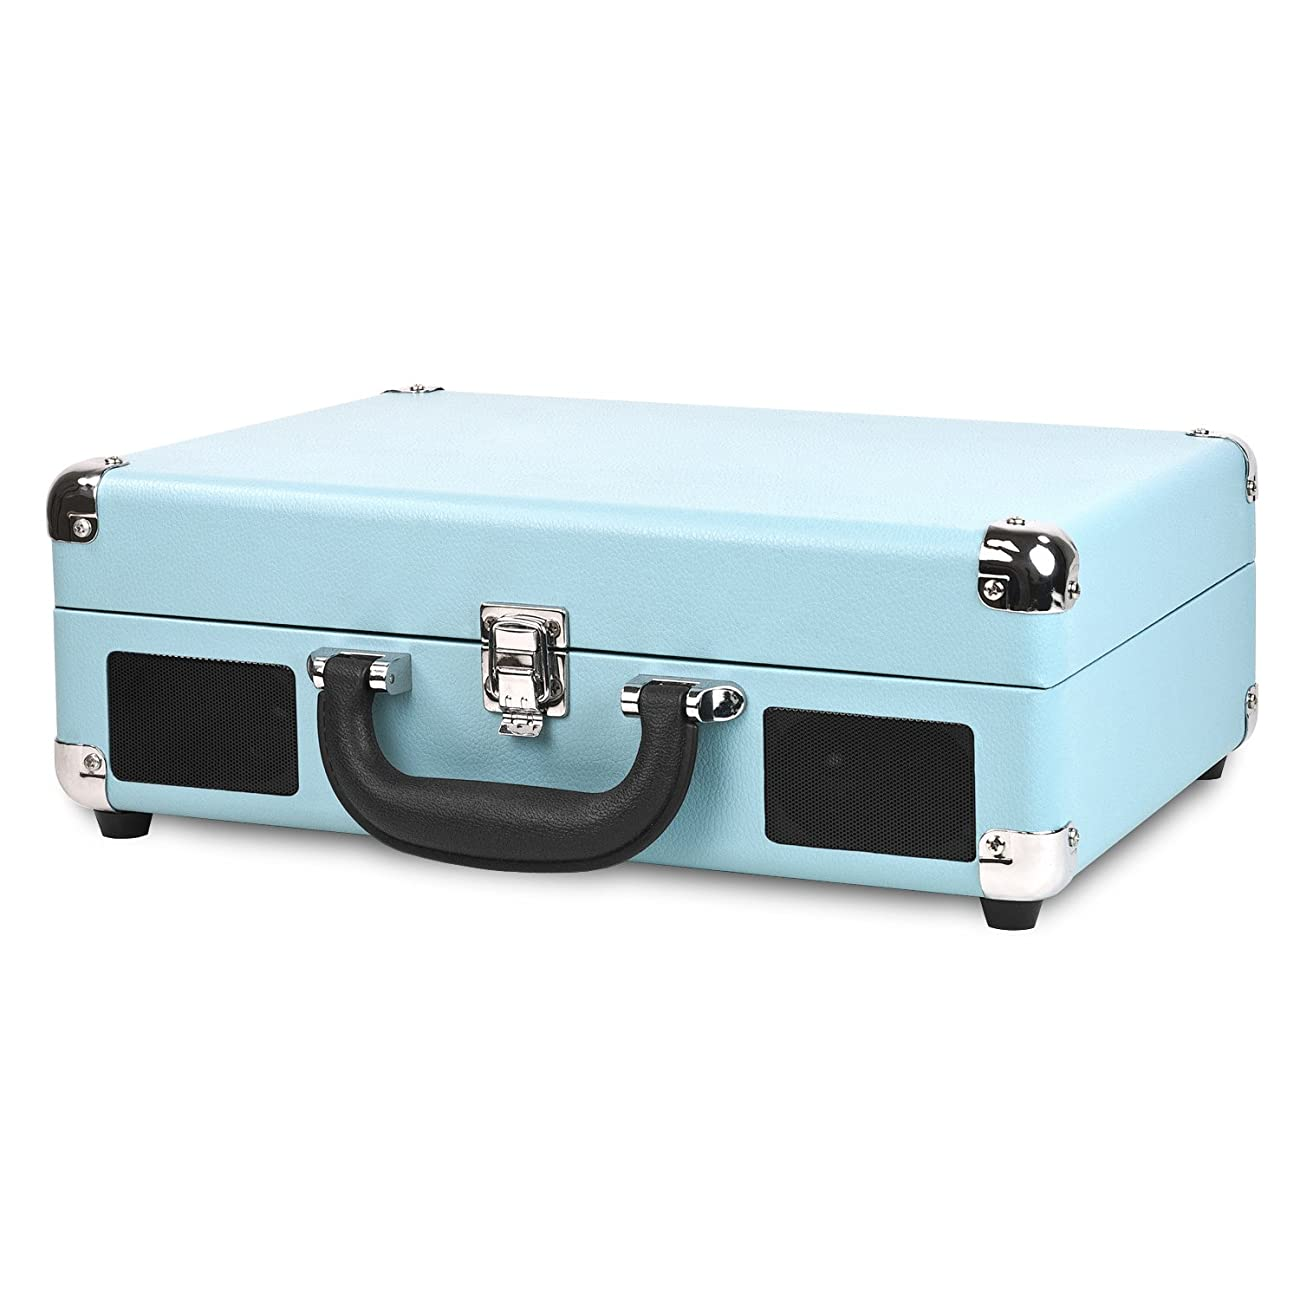 Victrola Nostalgic 3-Speed Vintage Bluetooth Suitcase Turntable, Turquoise 1